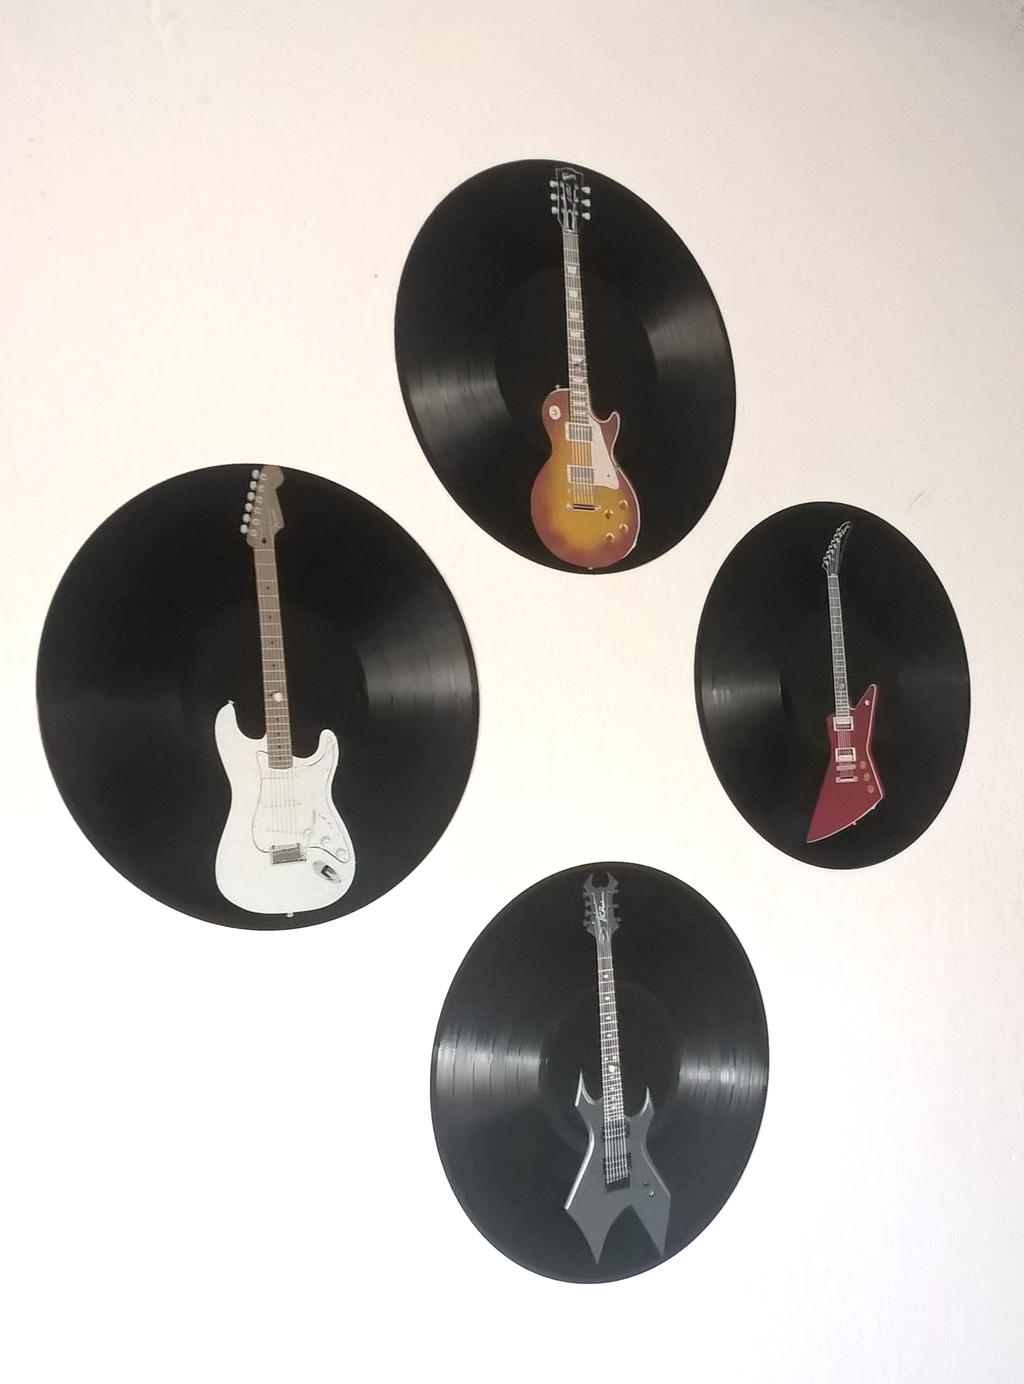 Electric Guitars painted on vinyl records by vantidus